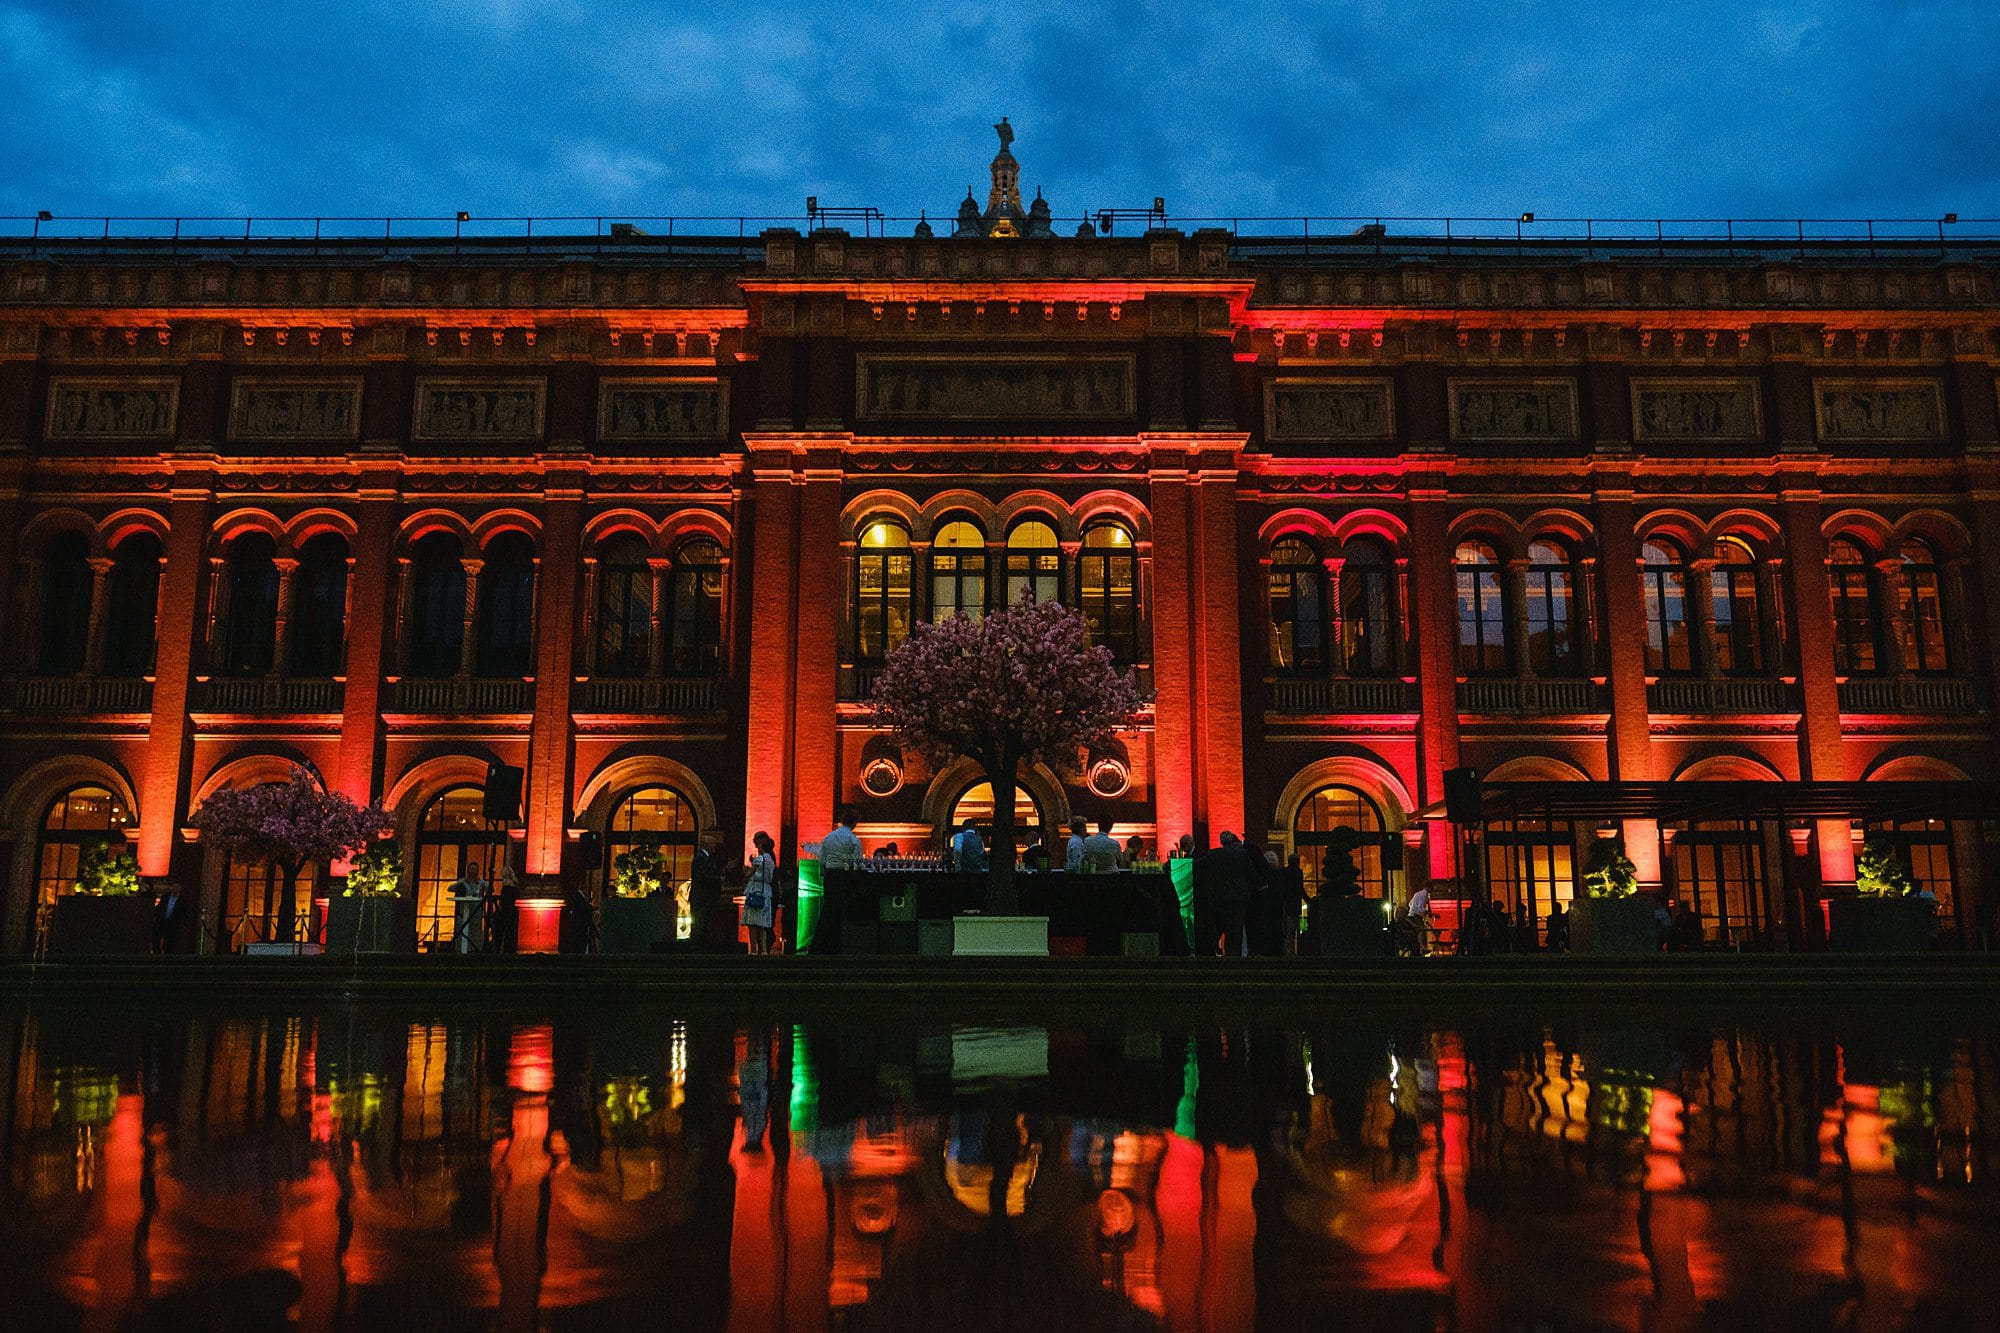 victoria albert event photographer london 057 - Summer party at the V&A Museum